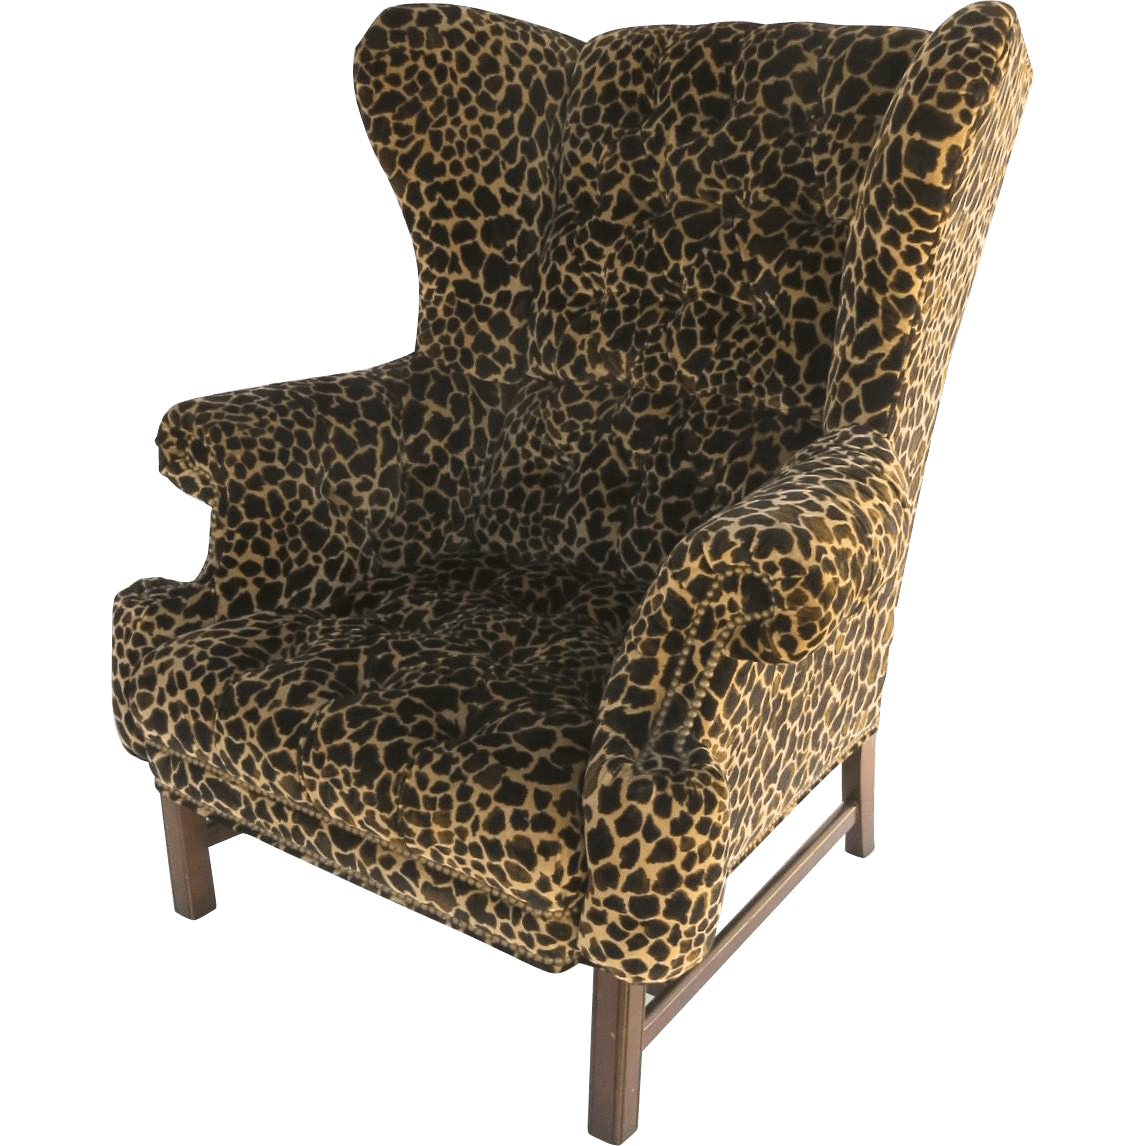 Cheetah Chair Large Scale Vintage Wing Chair With Straight Legs And